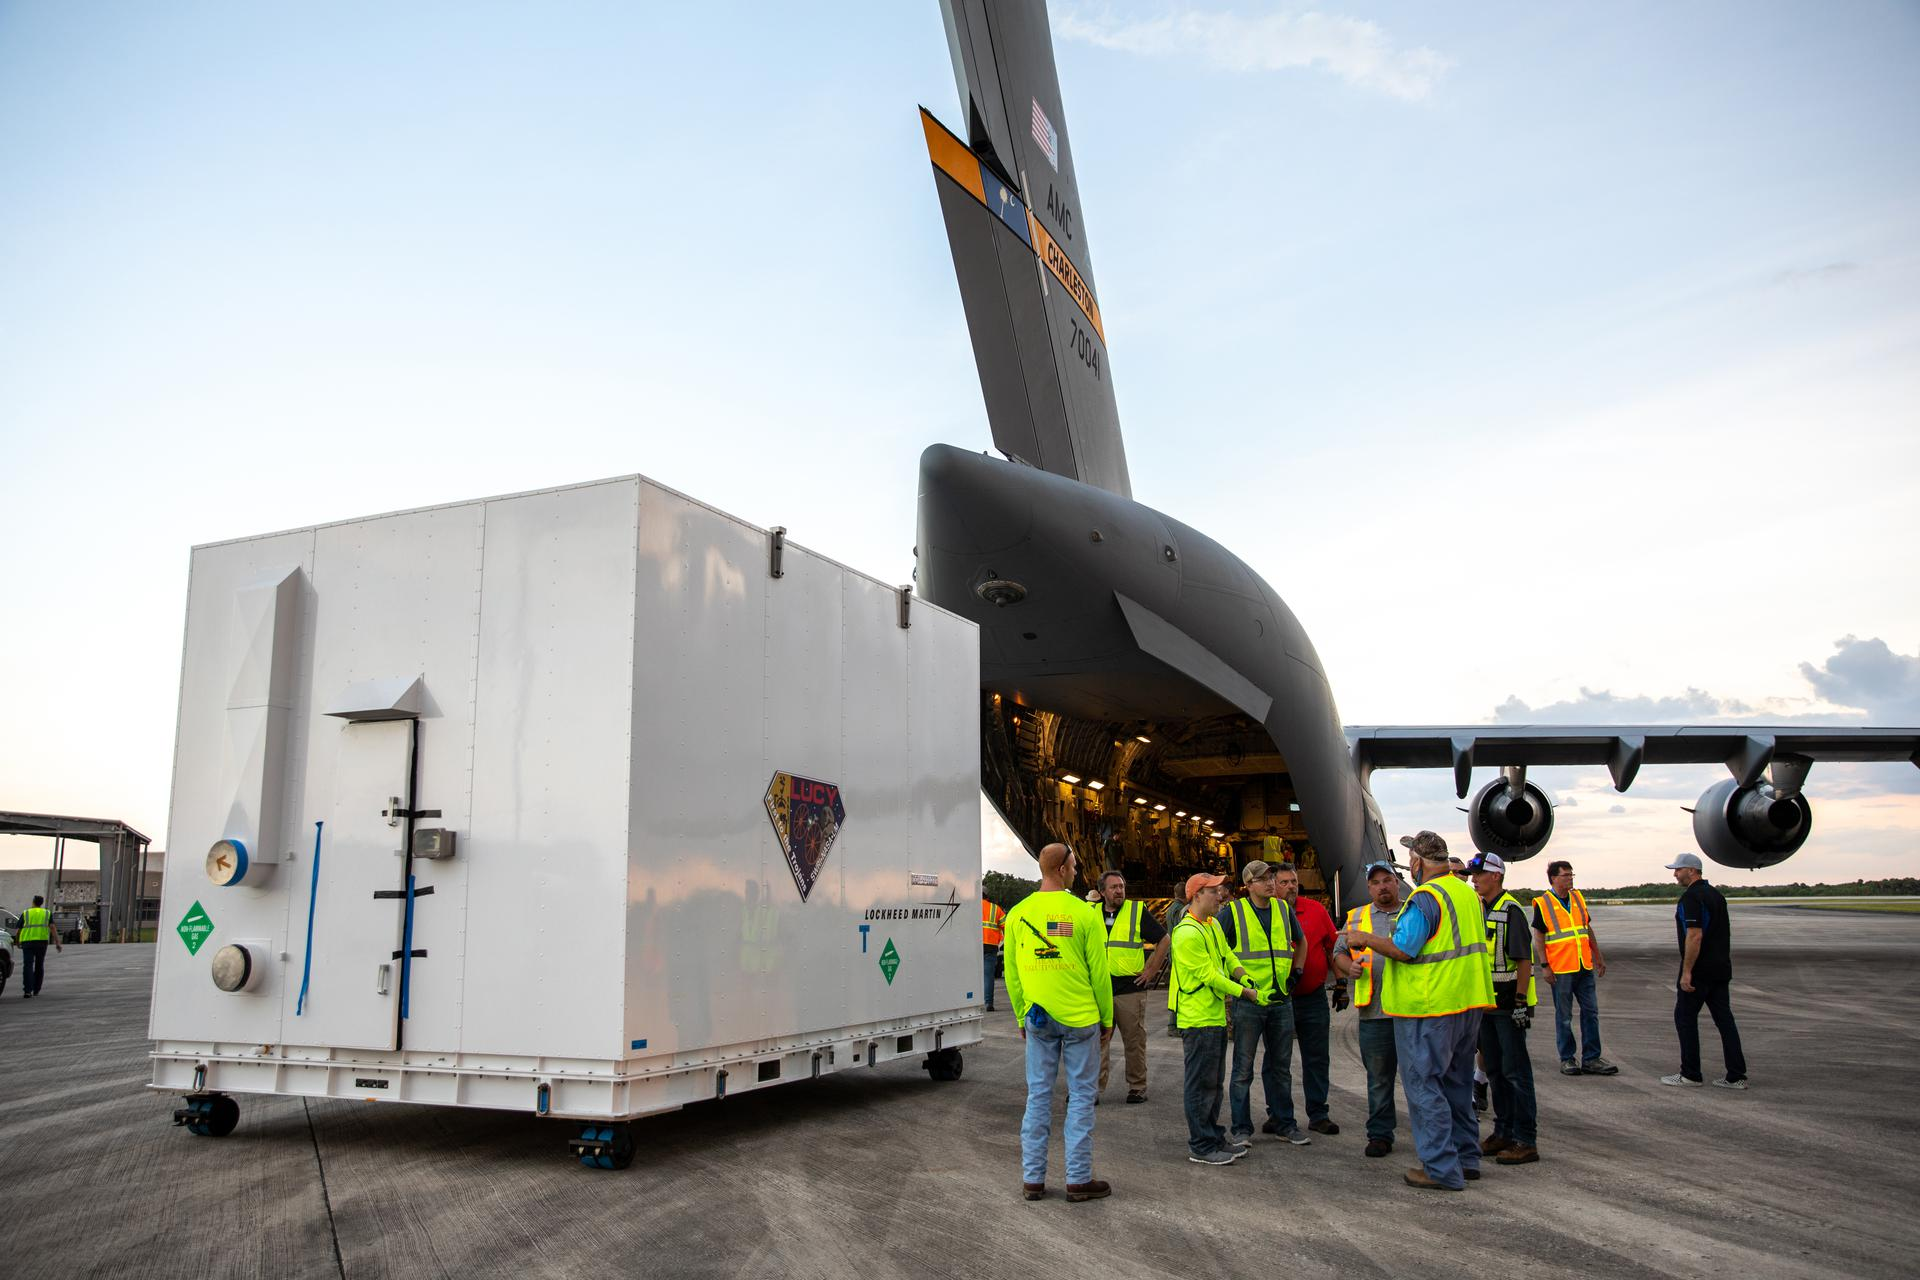 The shipping container holding NASA's Lucy spacecraft is unloaded from an Air Force C-17 cargo plane on the runway of the Launch and Landing Facility at Kennedy Space Center in Florida on July 30, 2021.